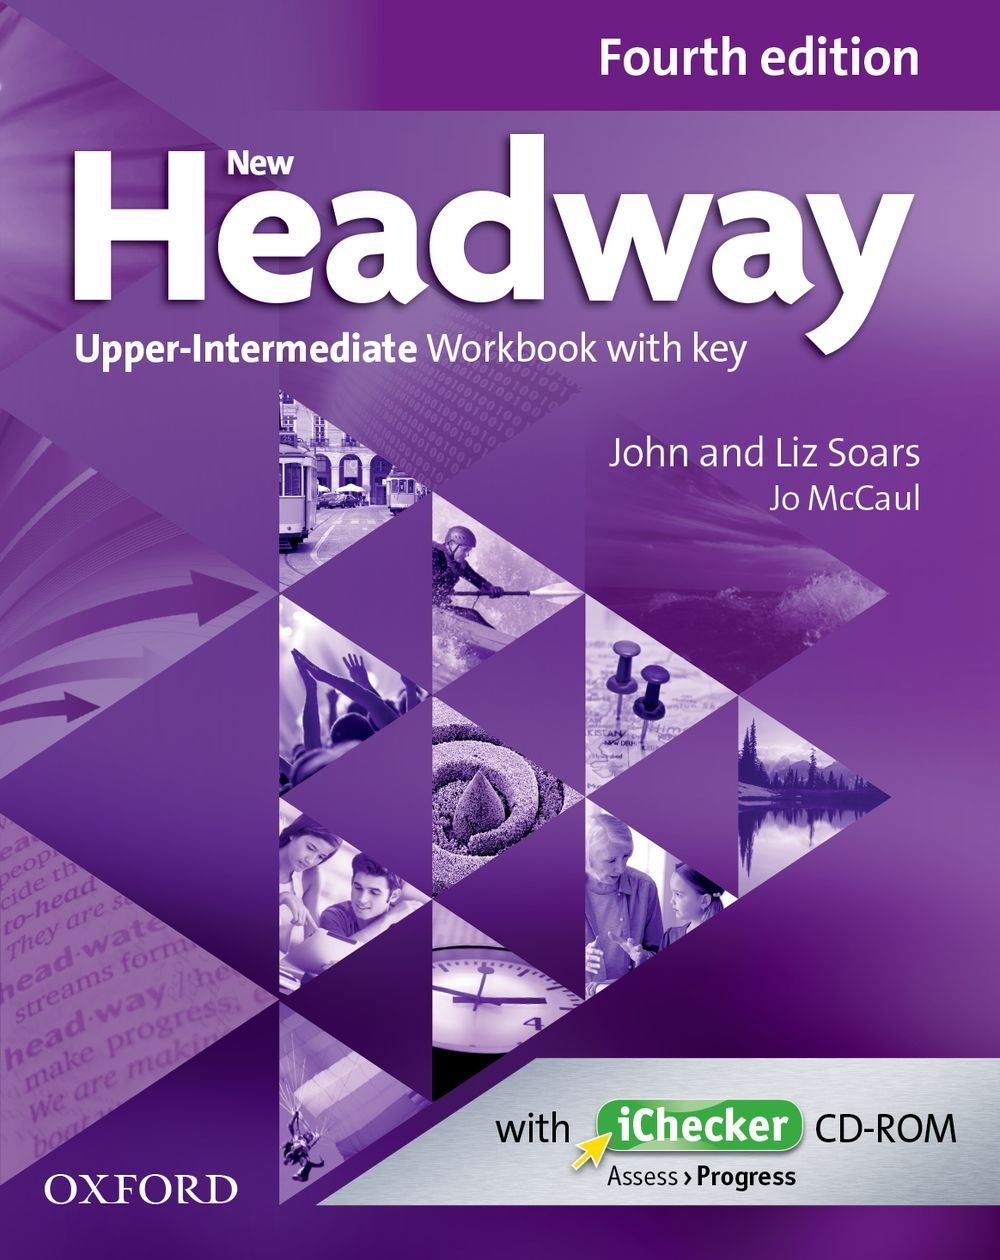 NEW HEADWAY UPPER-INTERMEDIATE 4th ED Workbook with Key + iChecker